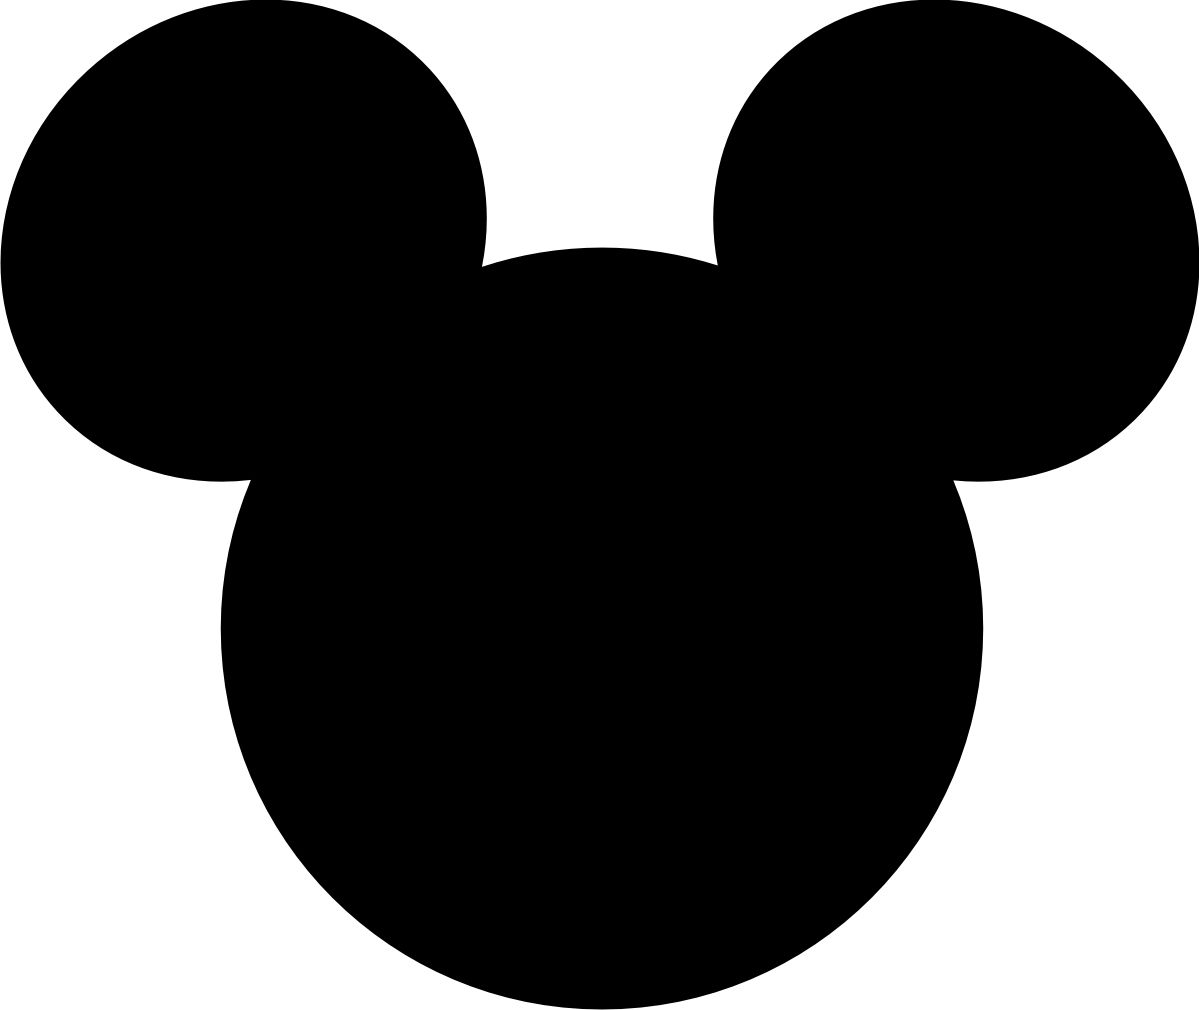 mickey mouse template - Dorit.mercatodos.co